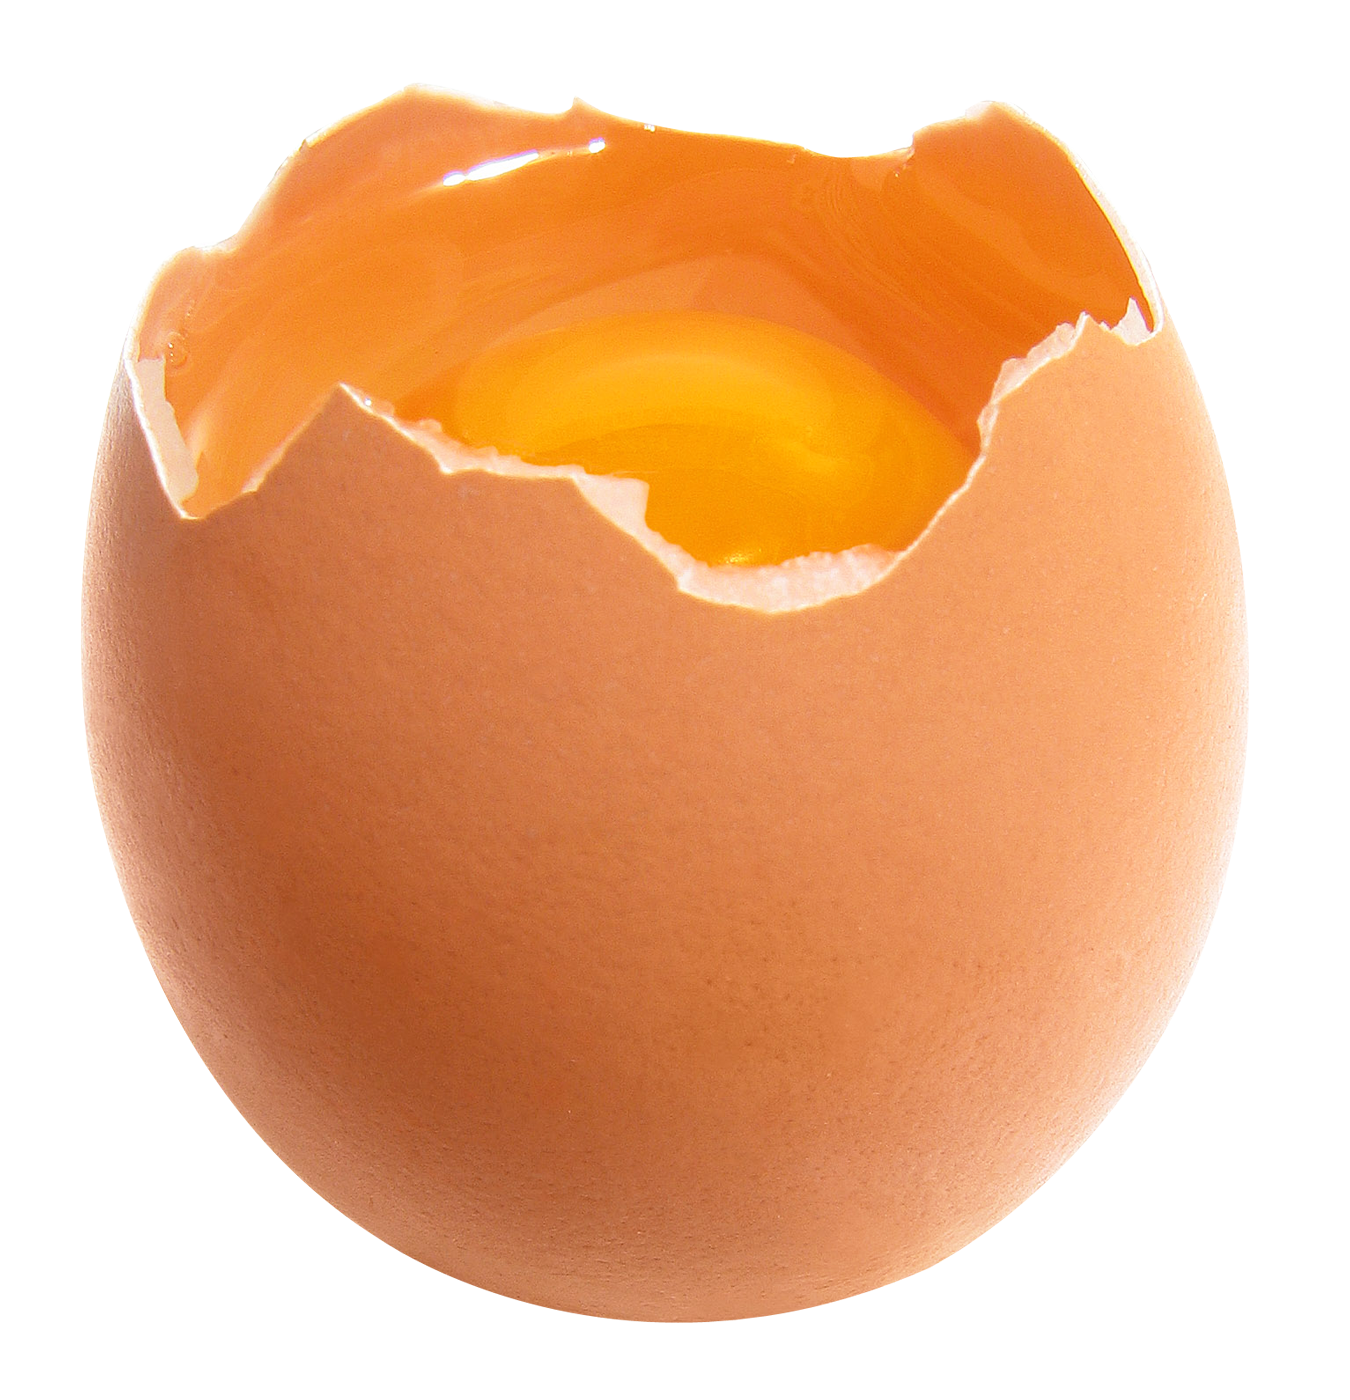 Egg PNG - 18570